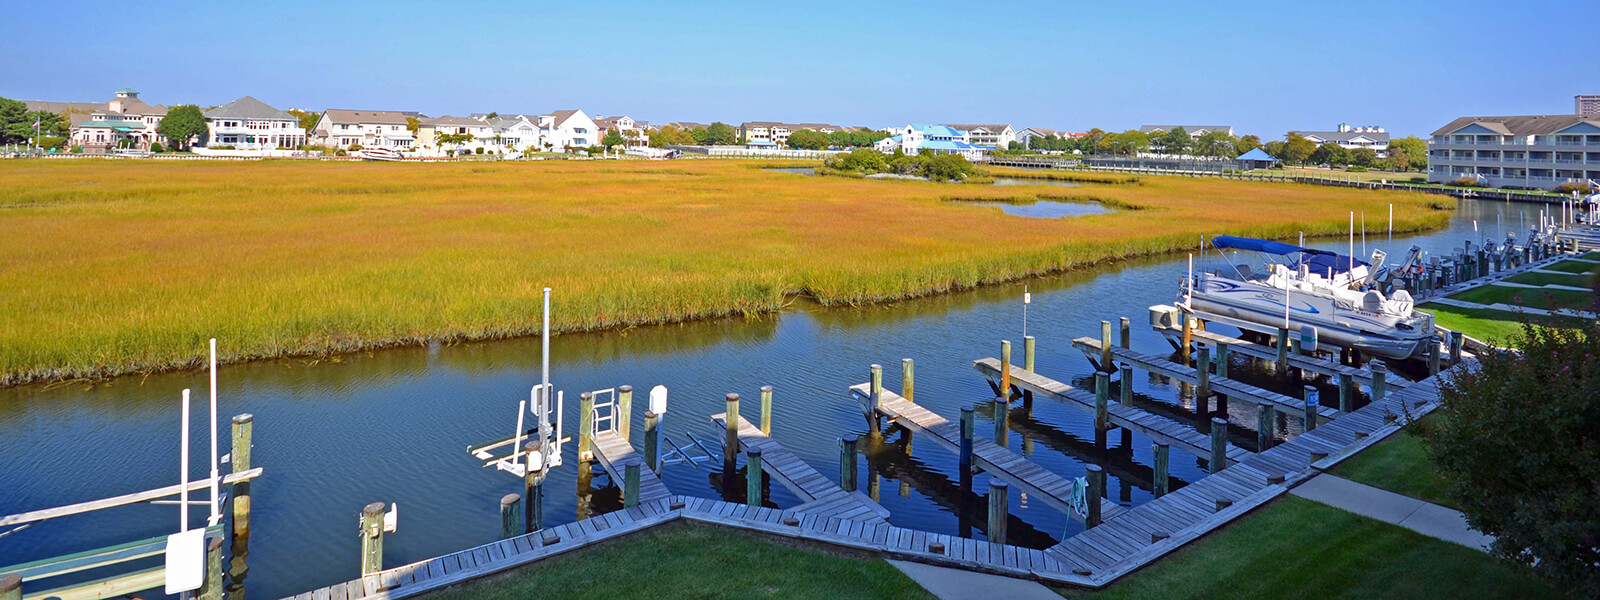 Harbour Island Ocean City Md For Sale